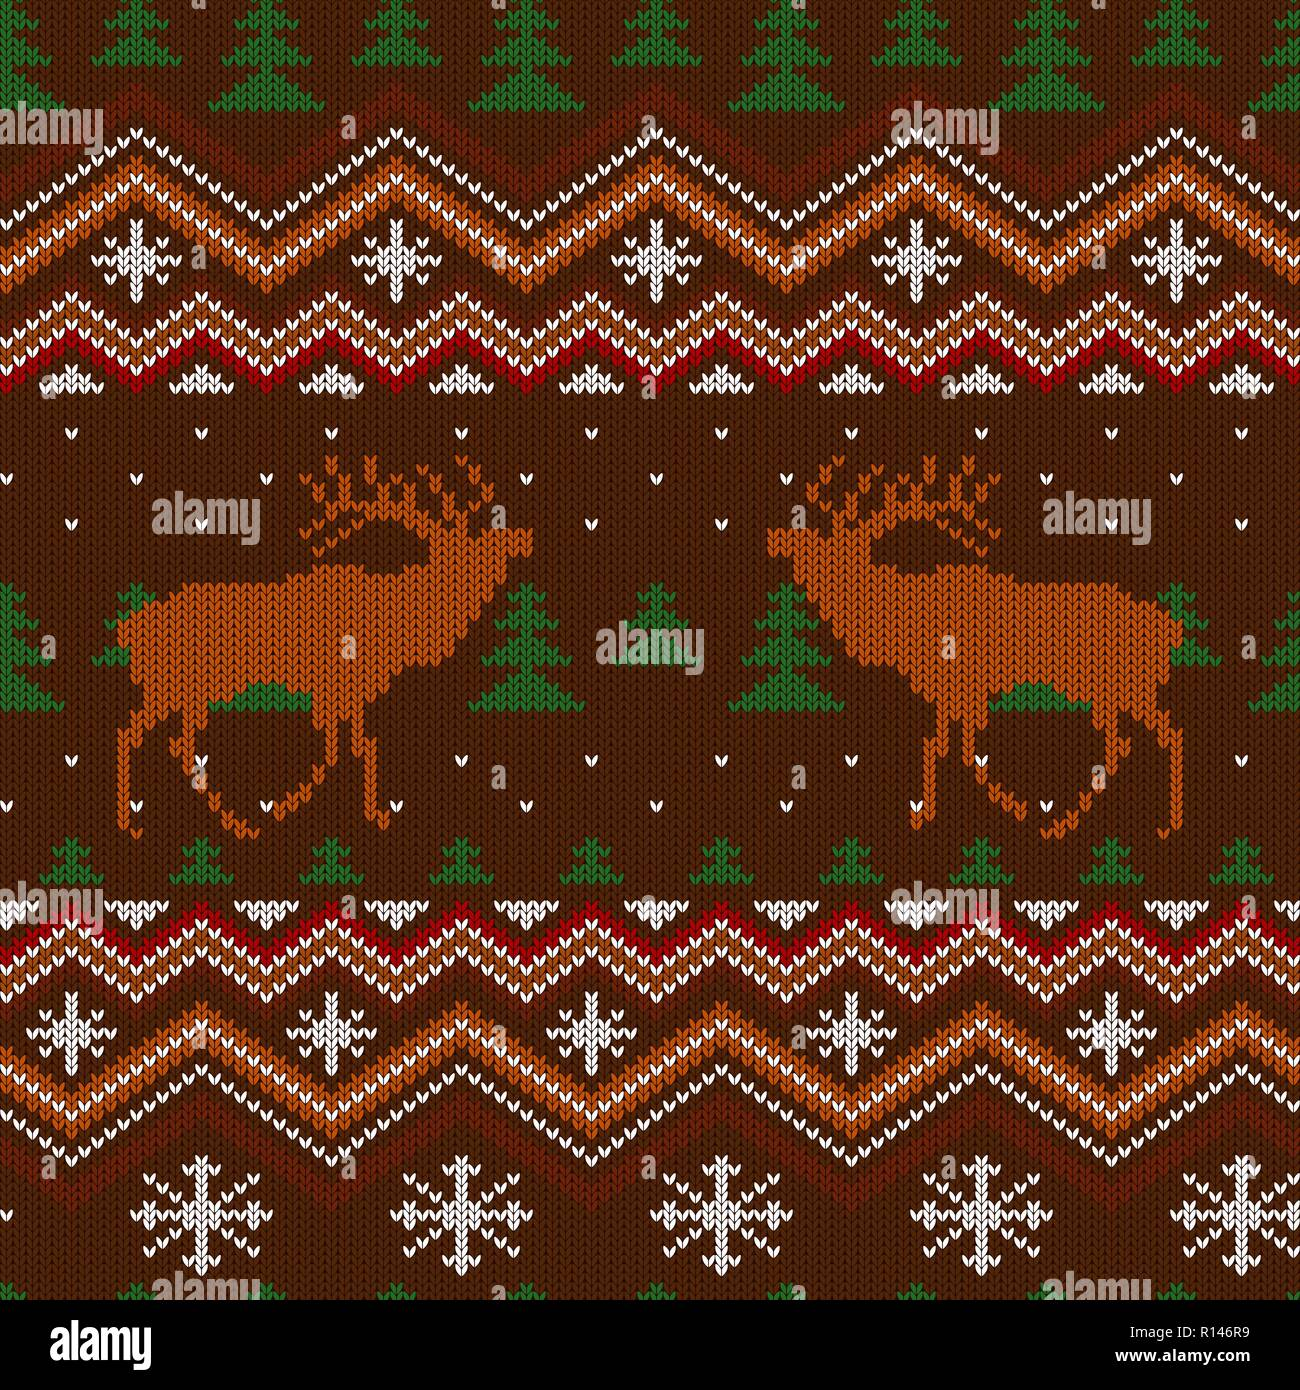 Winter knitted woolen seamless pattern with red deer and Christmas trees - Stock Vector